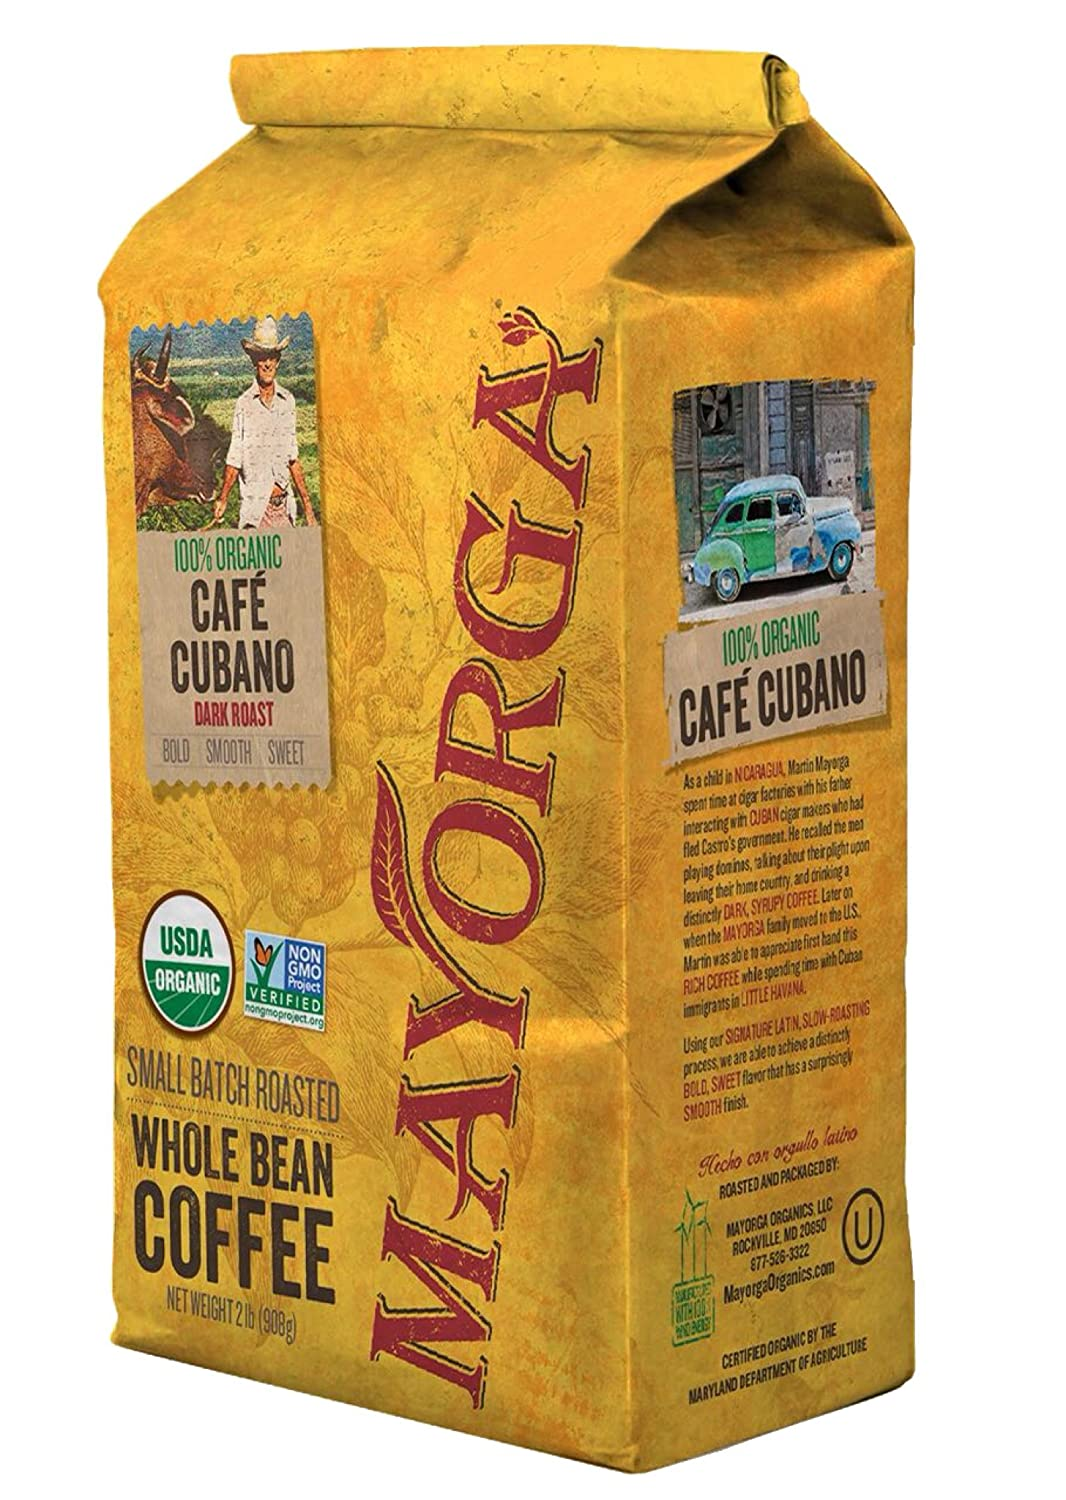 Mayorga Organics Cafe Cubano Review